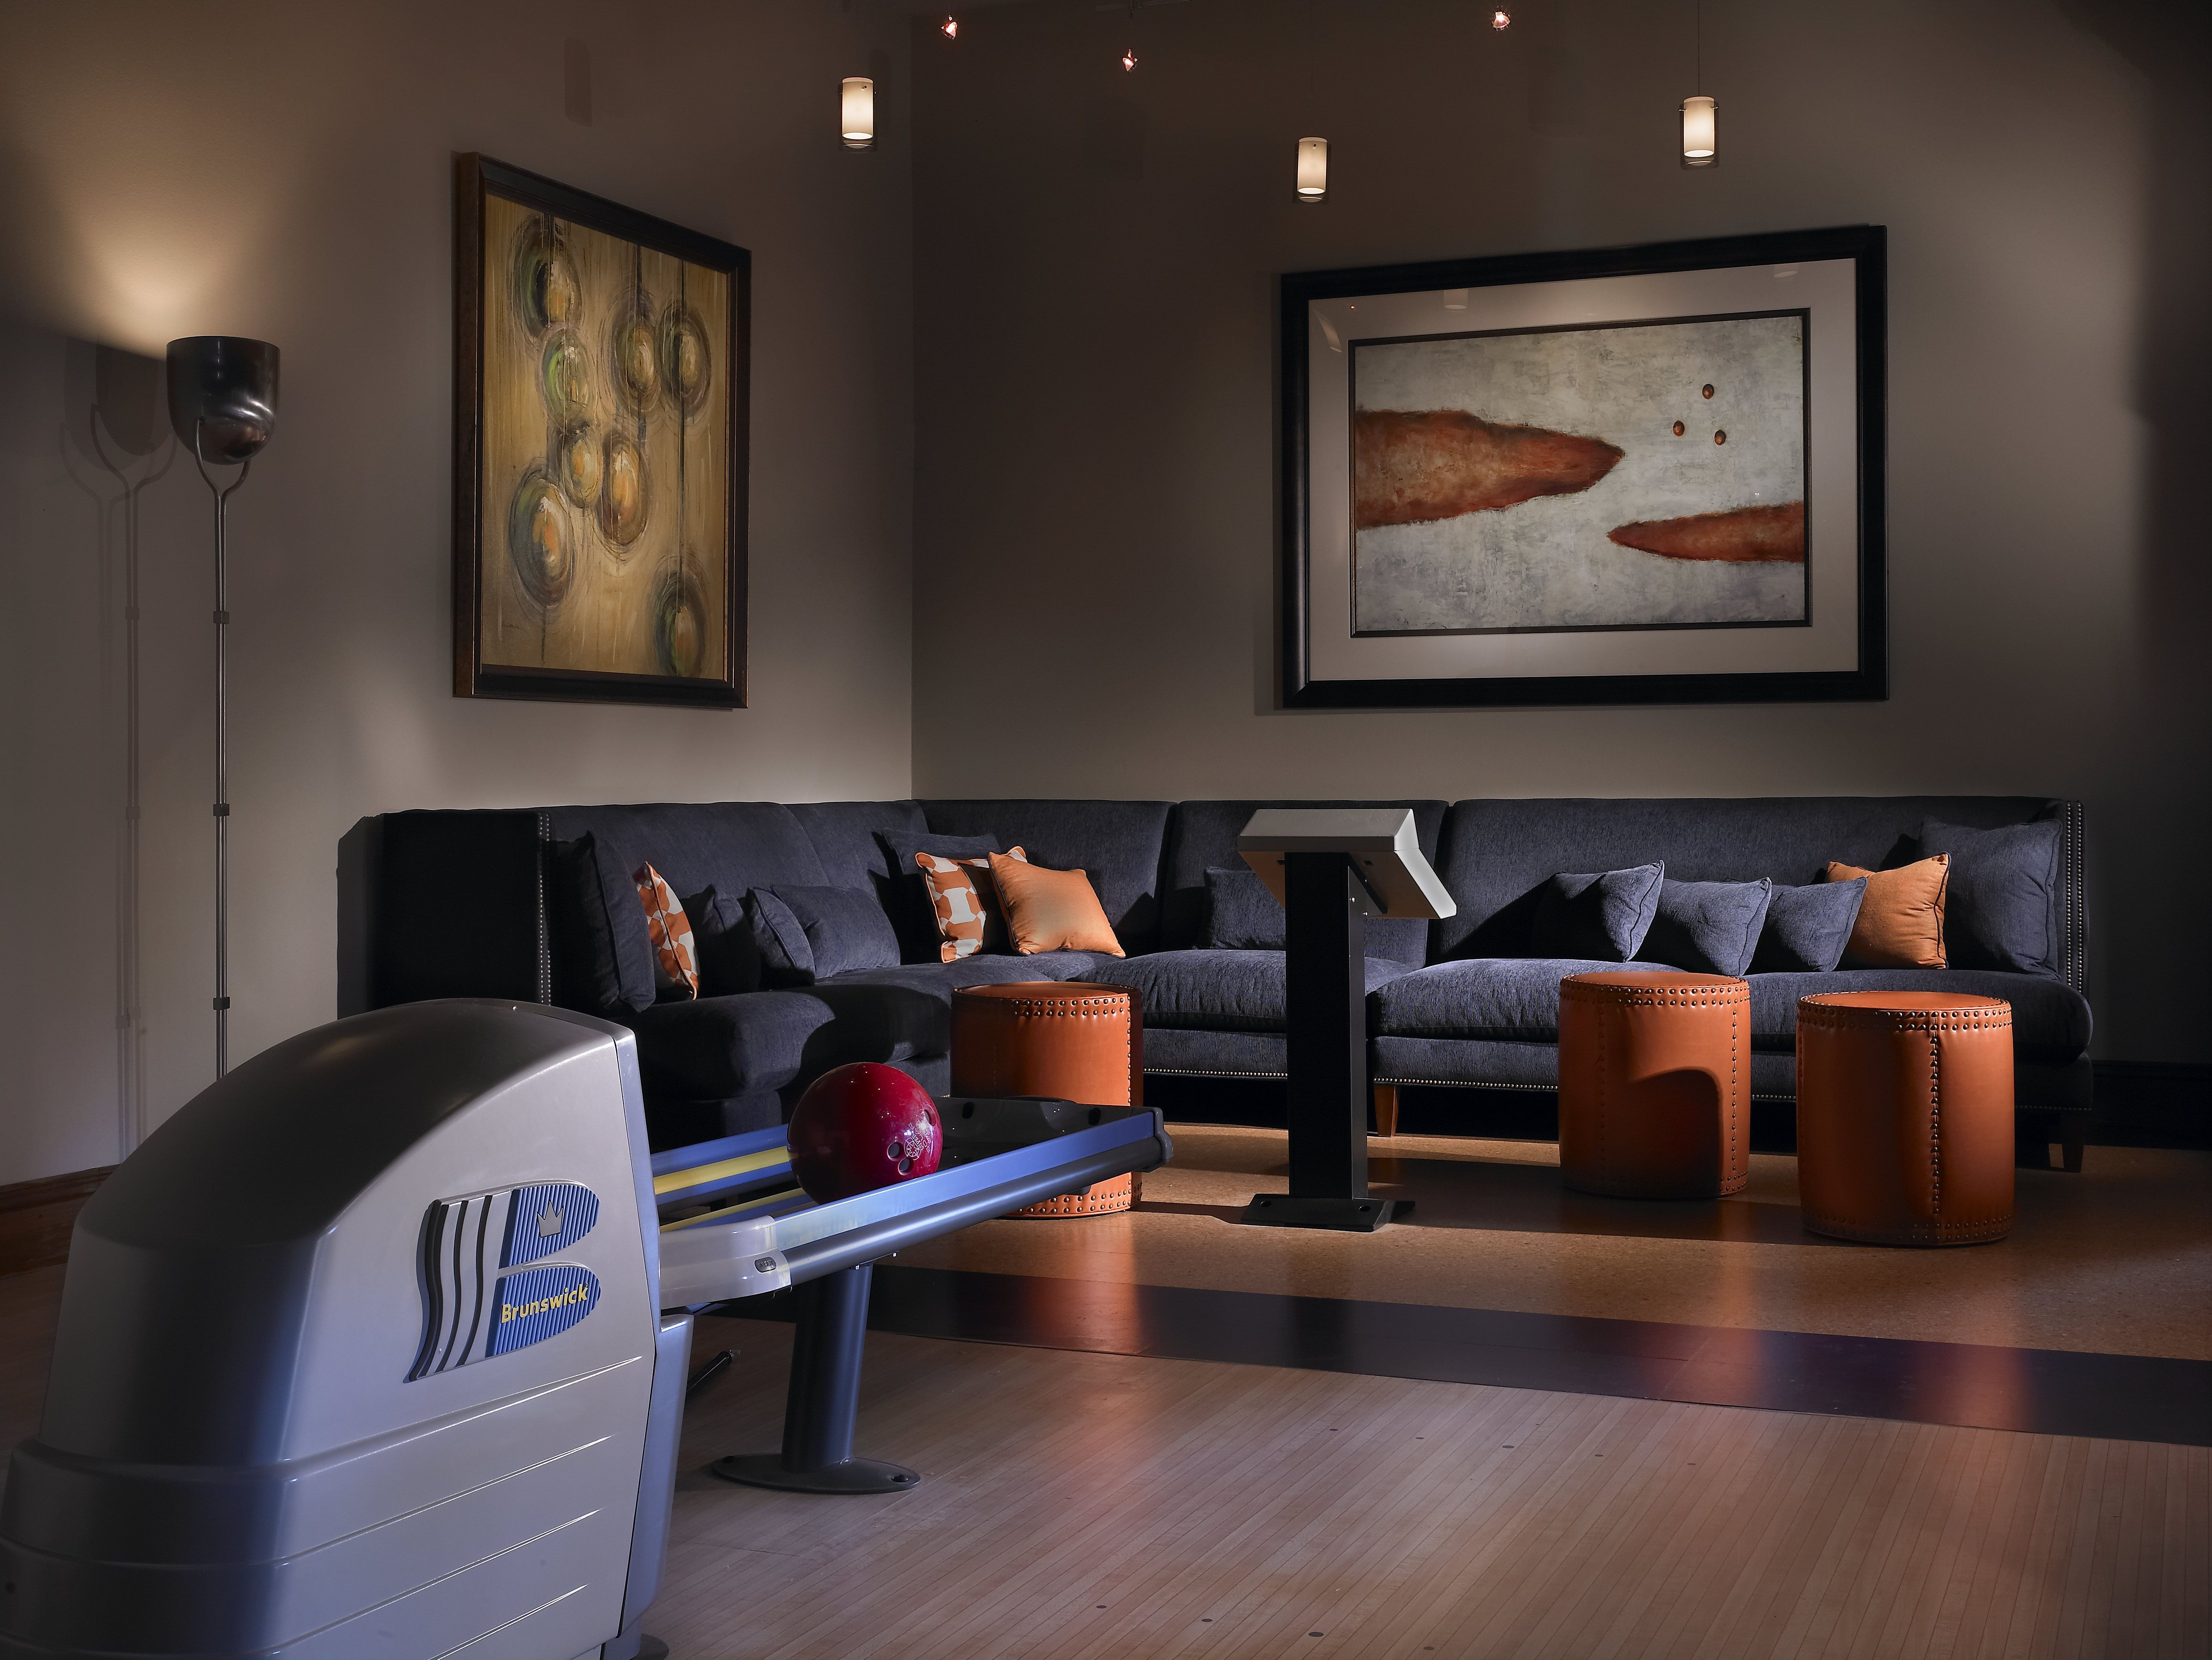 Best ideas about Game Room Seating . Save or Pin Game Room Seating Anne Rue Interiors Work Now.